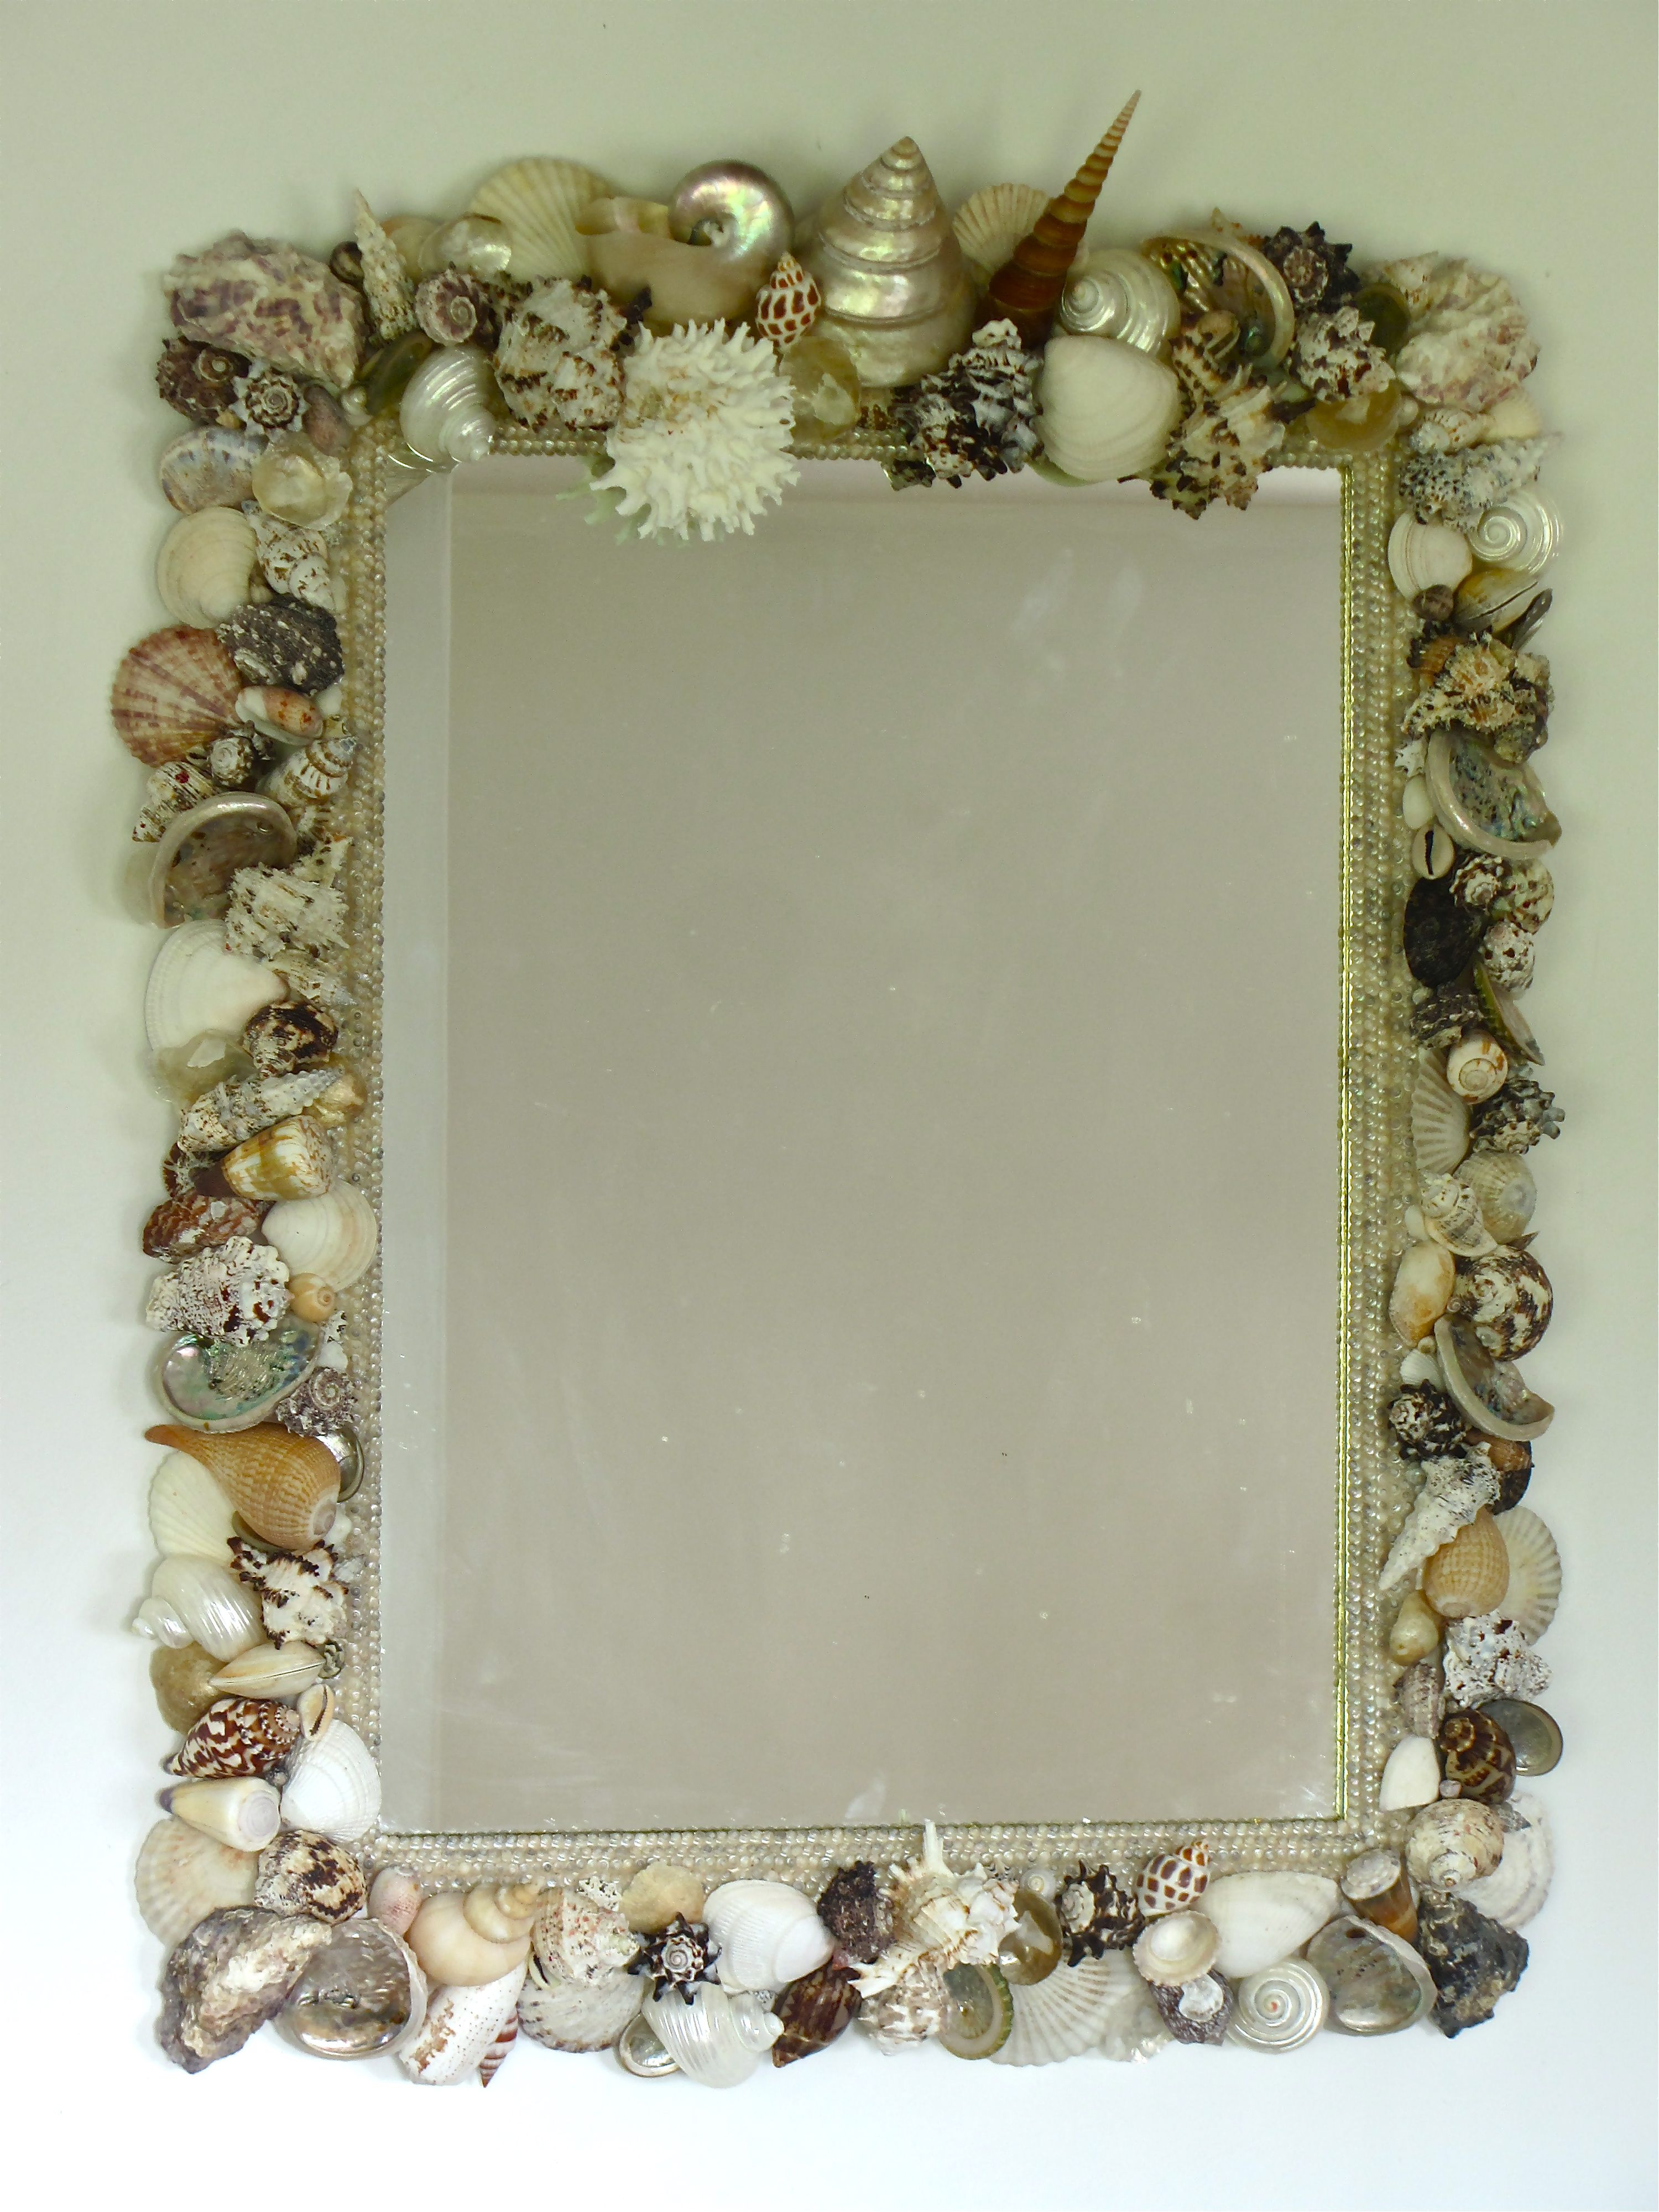 latest shell mirror | Ayna modelleri | Pinterest